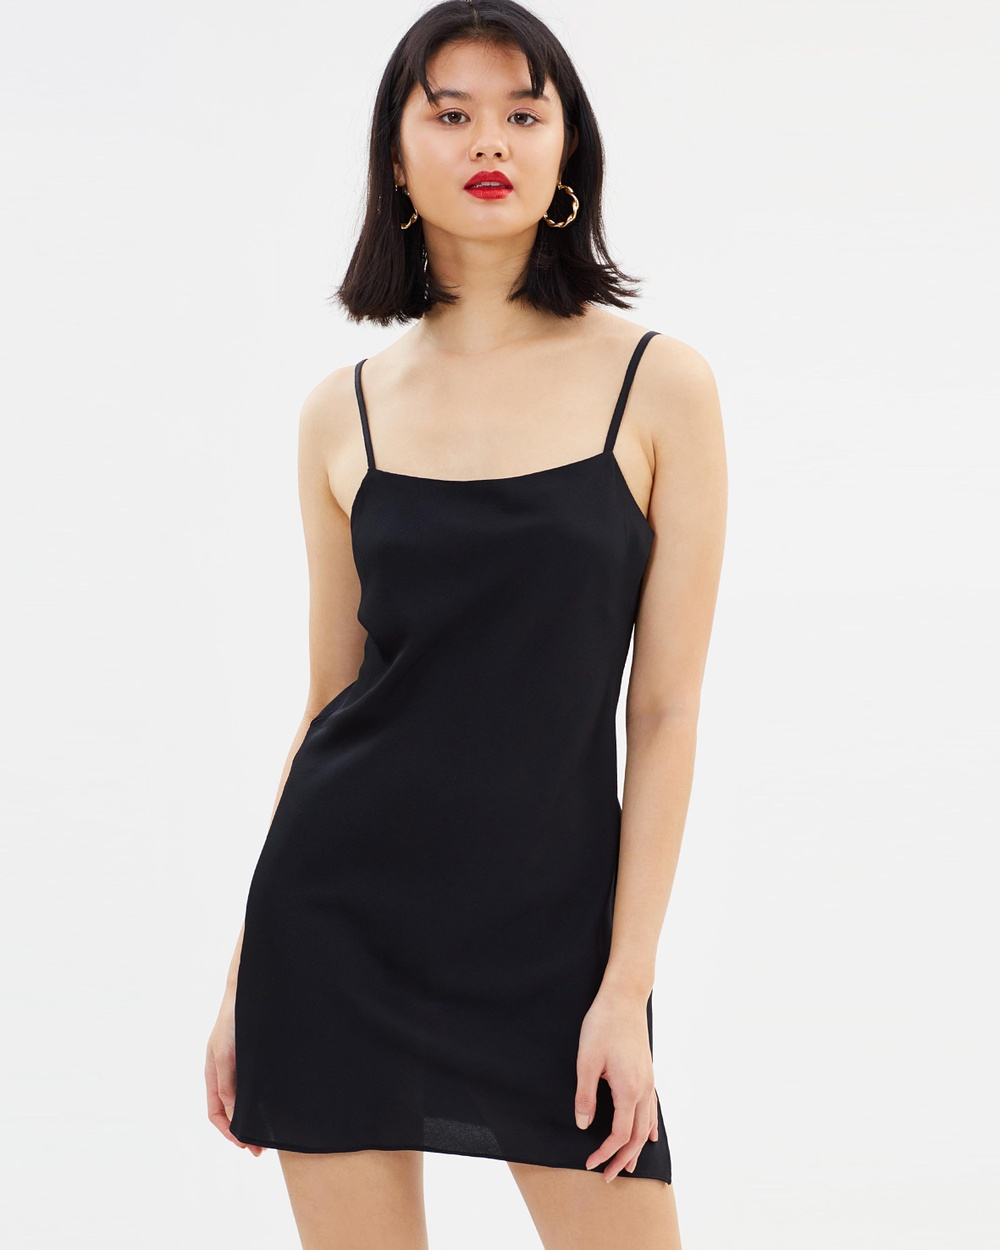 Miss Selfridge Satin Bubble Slip Mini Dress Dresses Black Satin Bubble Slip Mini Dress